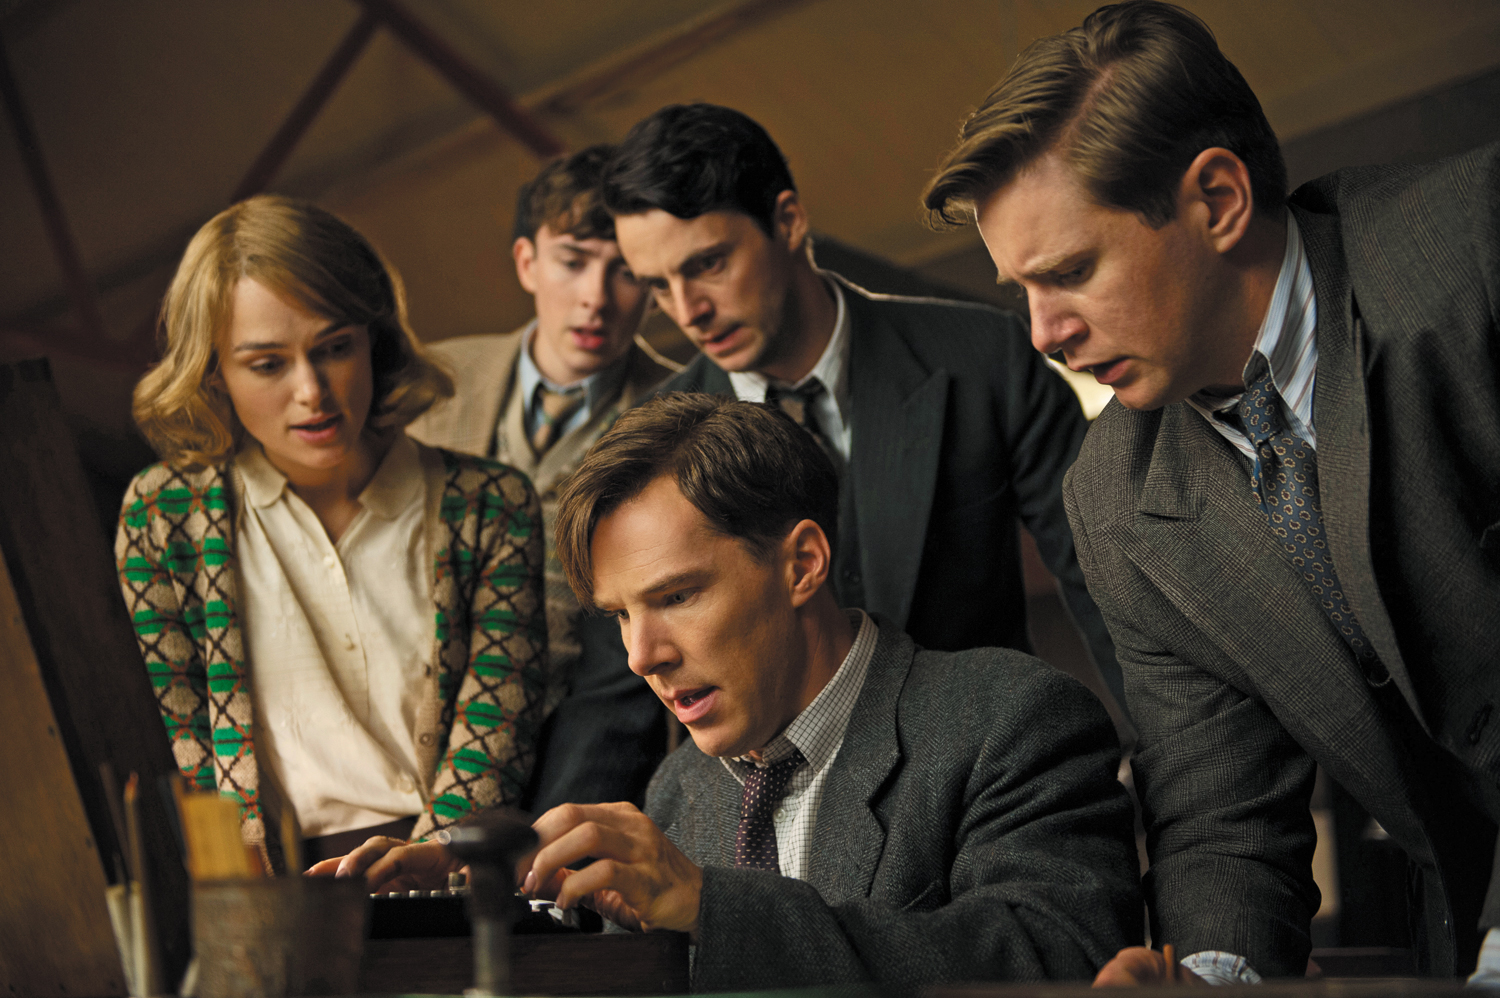 Benedict-Cumberbatch-as-Alan-Turing-in-The-Imitation-Game